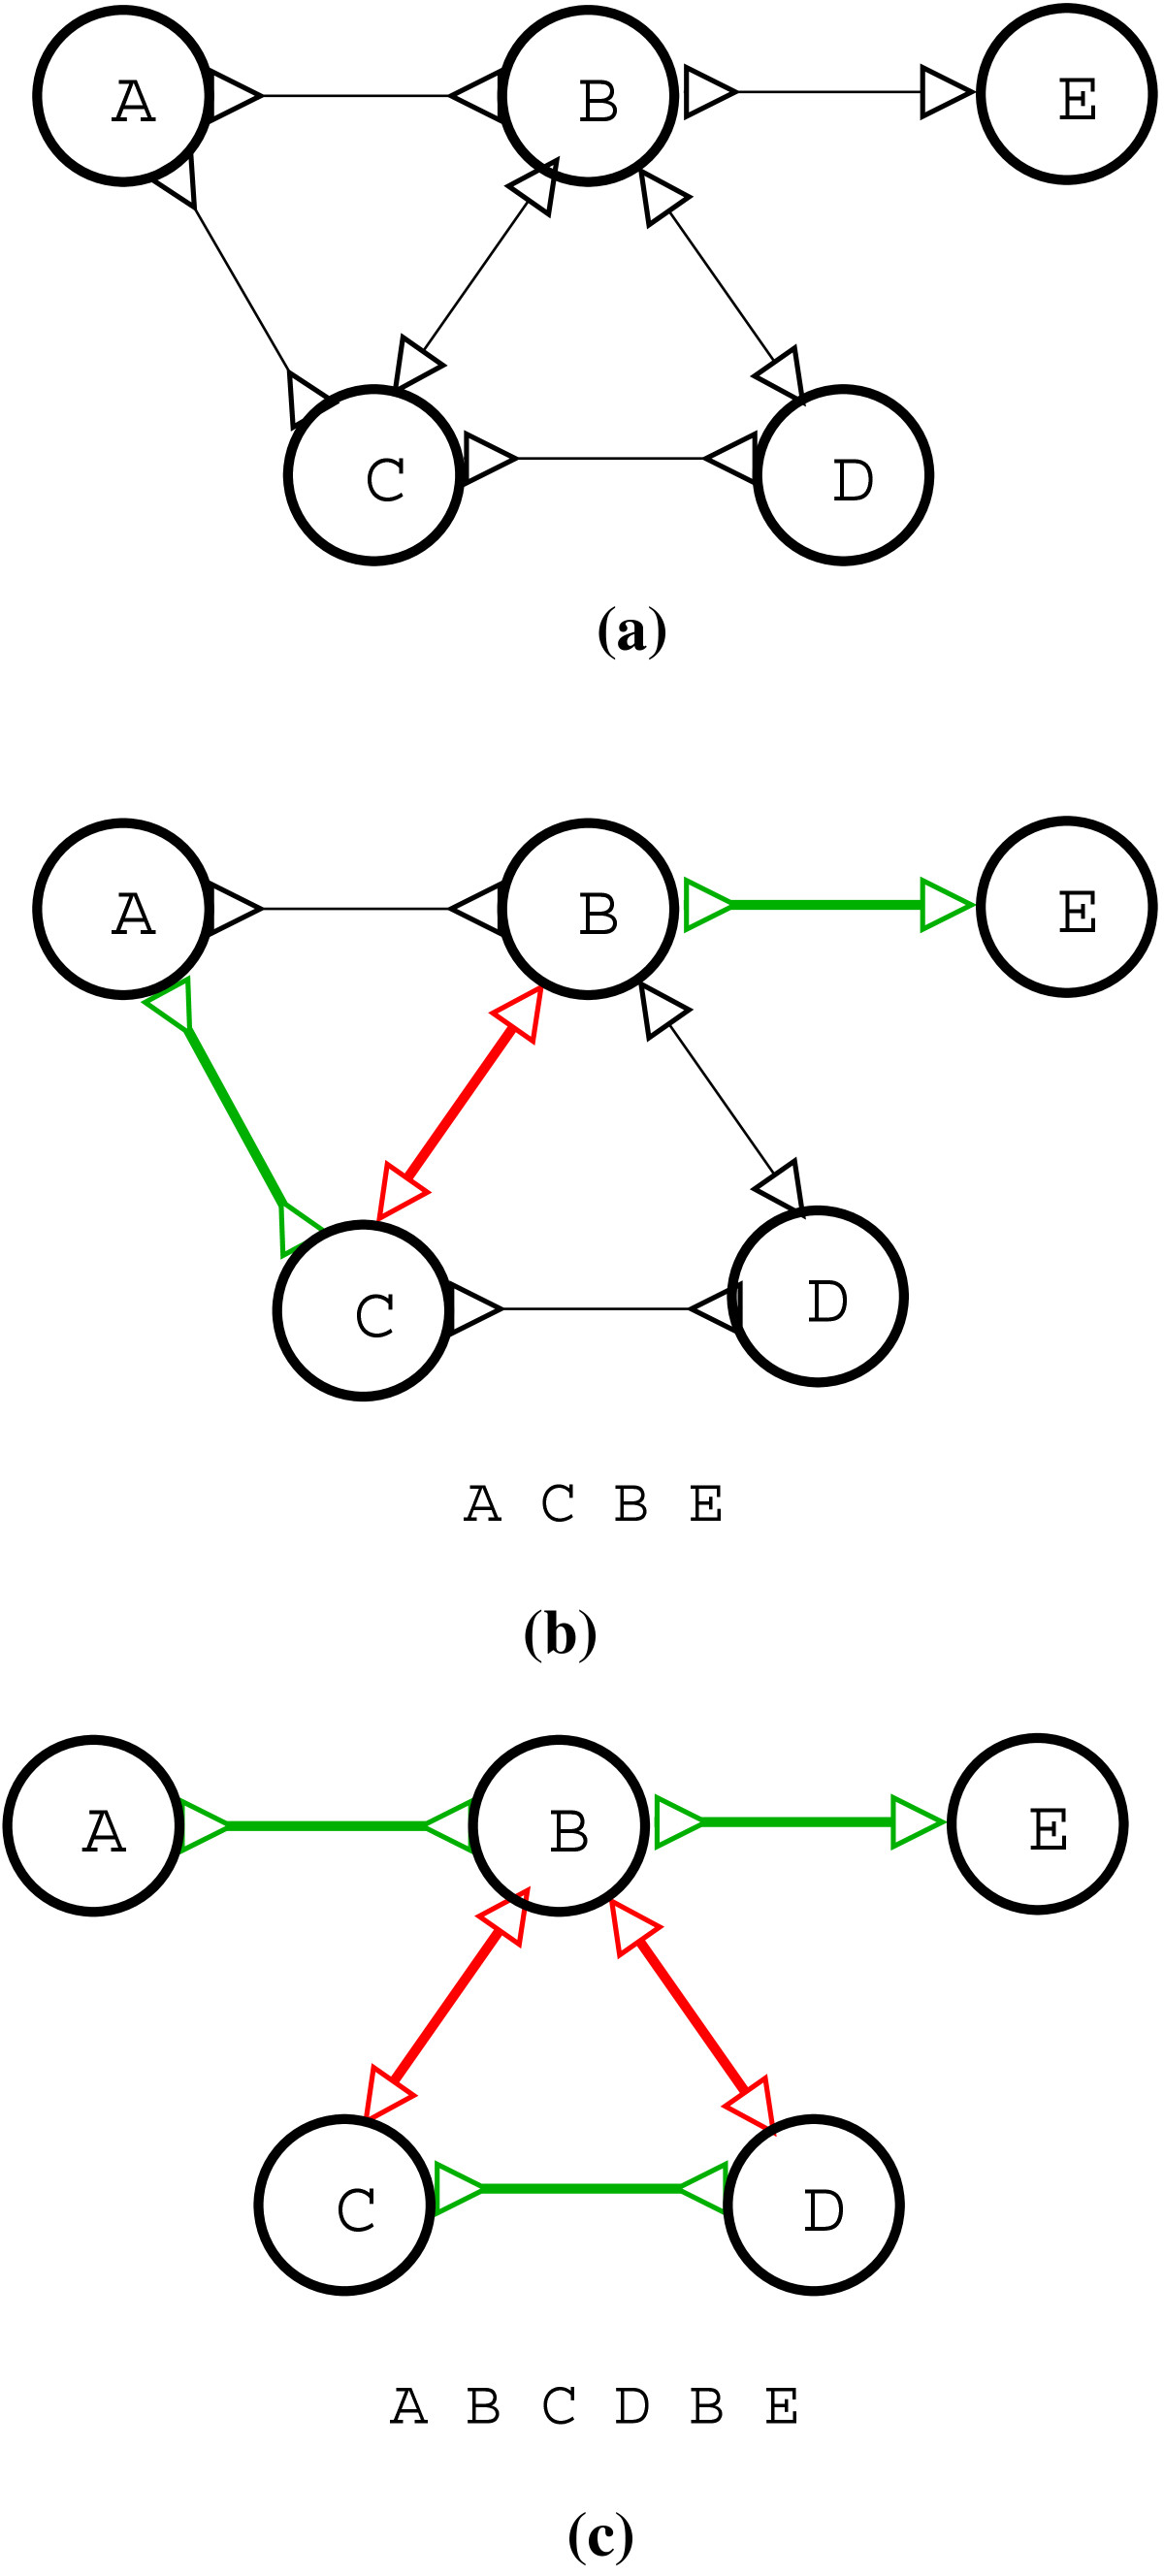 http://static-content.springer.com/image/art%3A10.1186%2F1471-2105-11-560/MediaObjects/12859_2010_Article_4143_Fig1_HTML.jpg